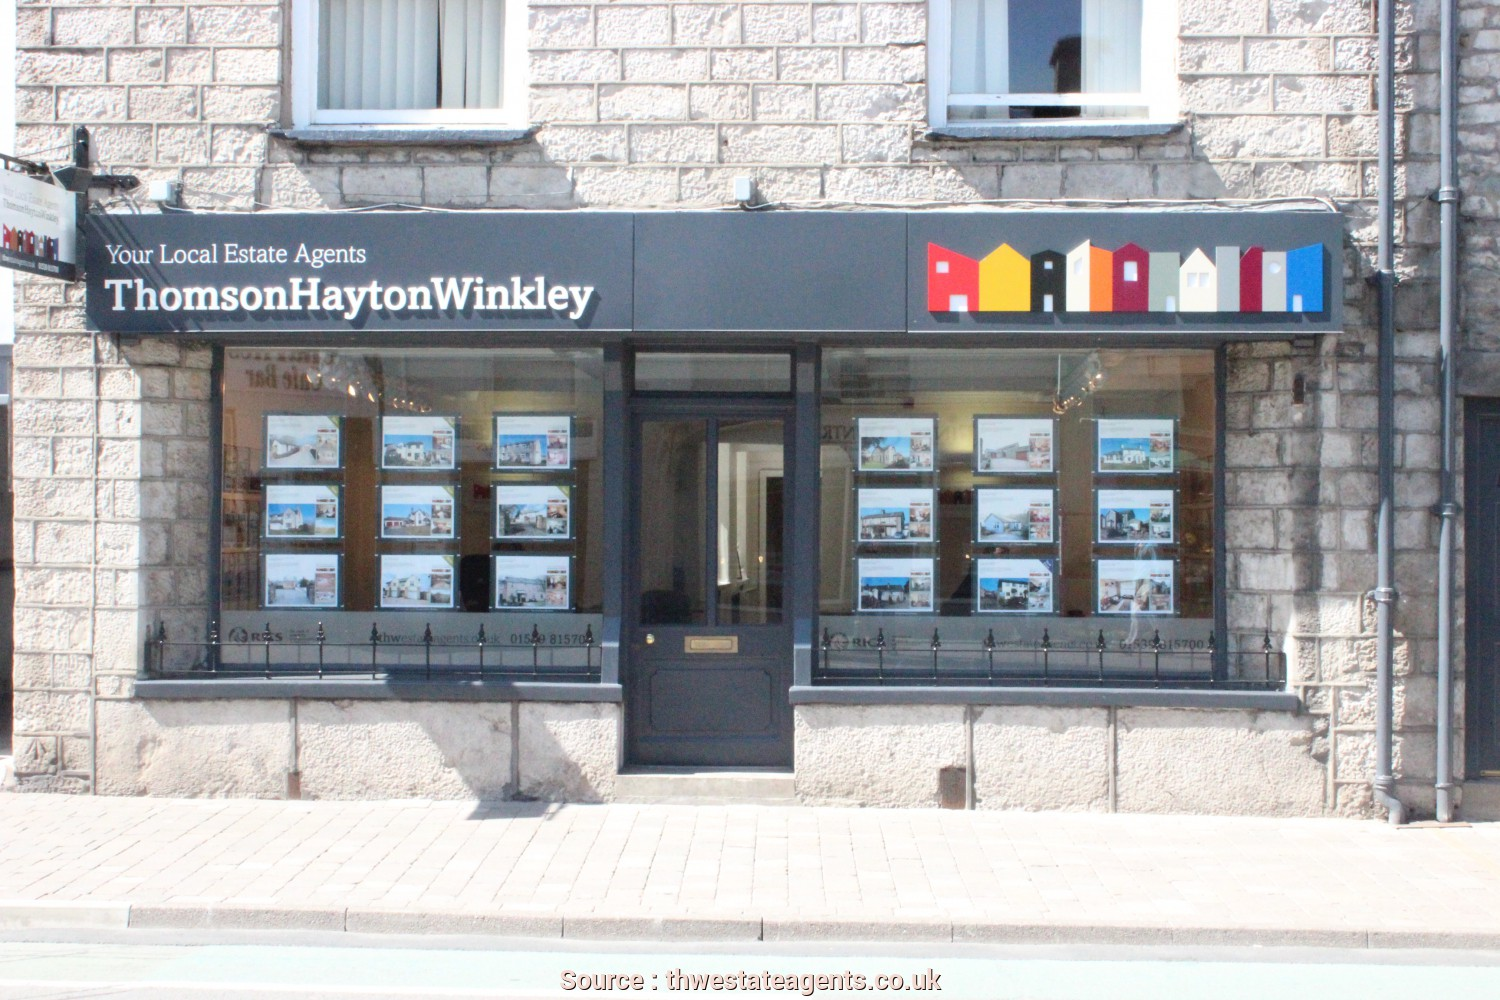 4 Molteni Lettings, Favoloso Estate Agents In Kendal, Windermere, Grange-Over-Sands, Sales And